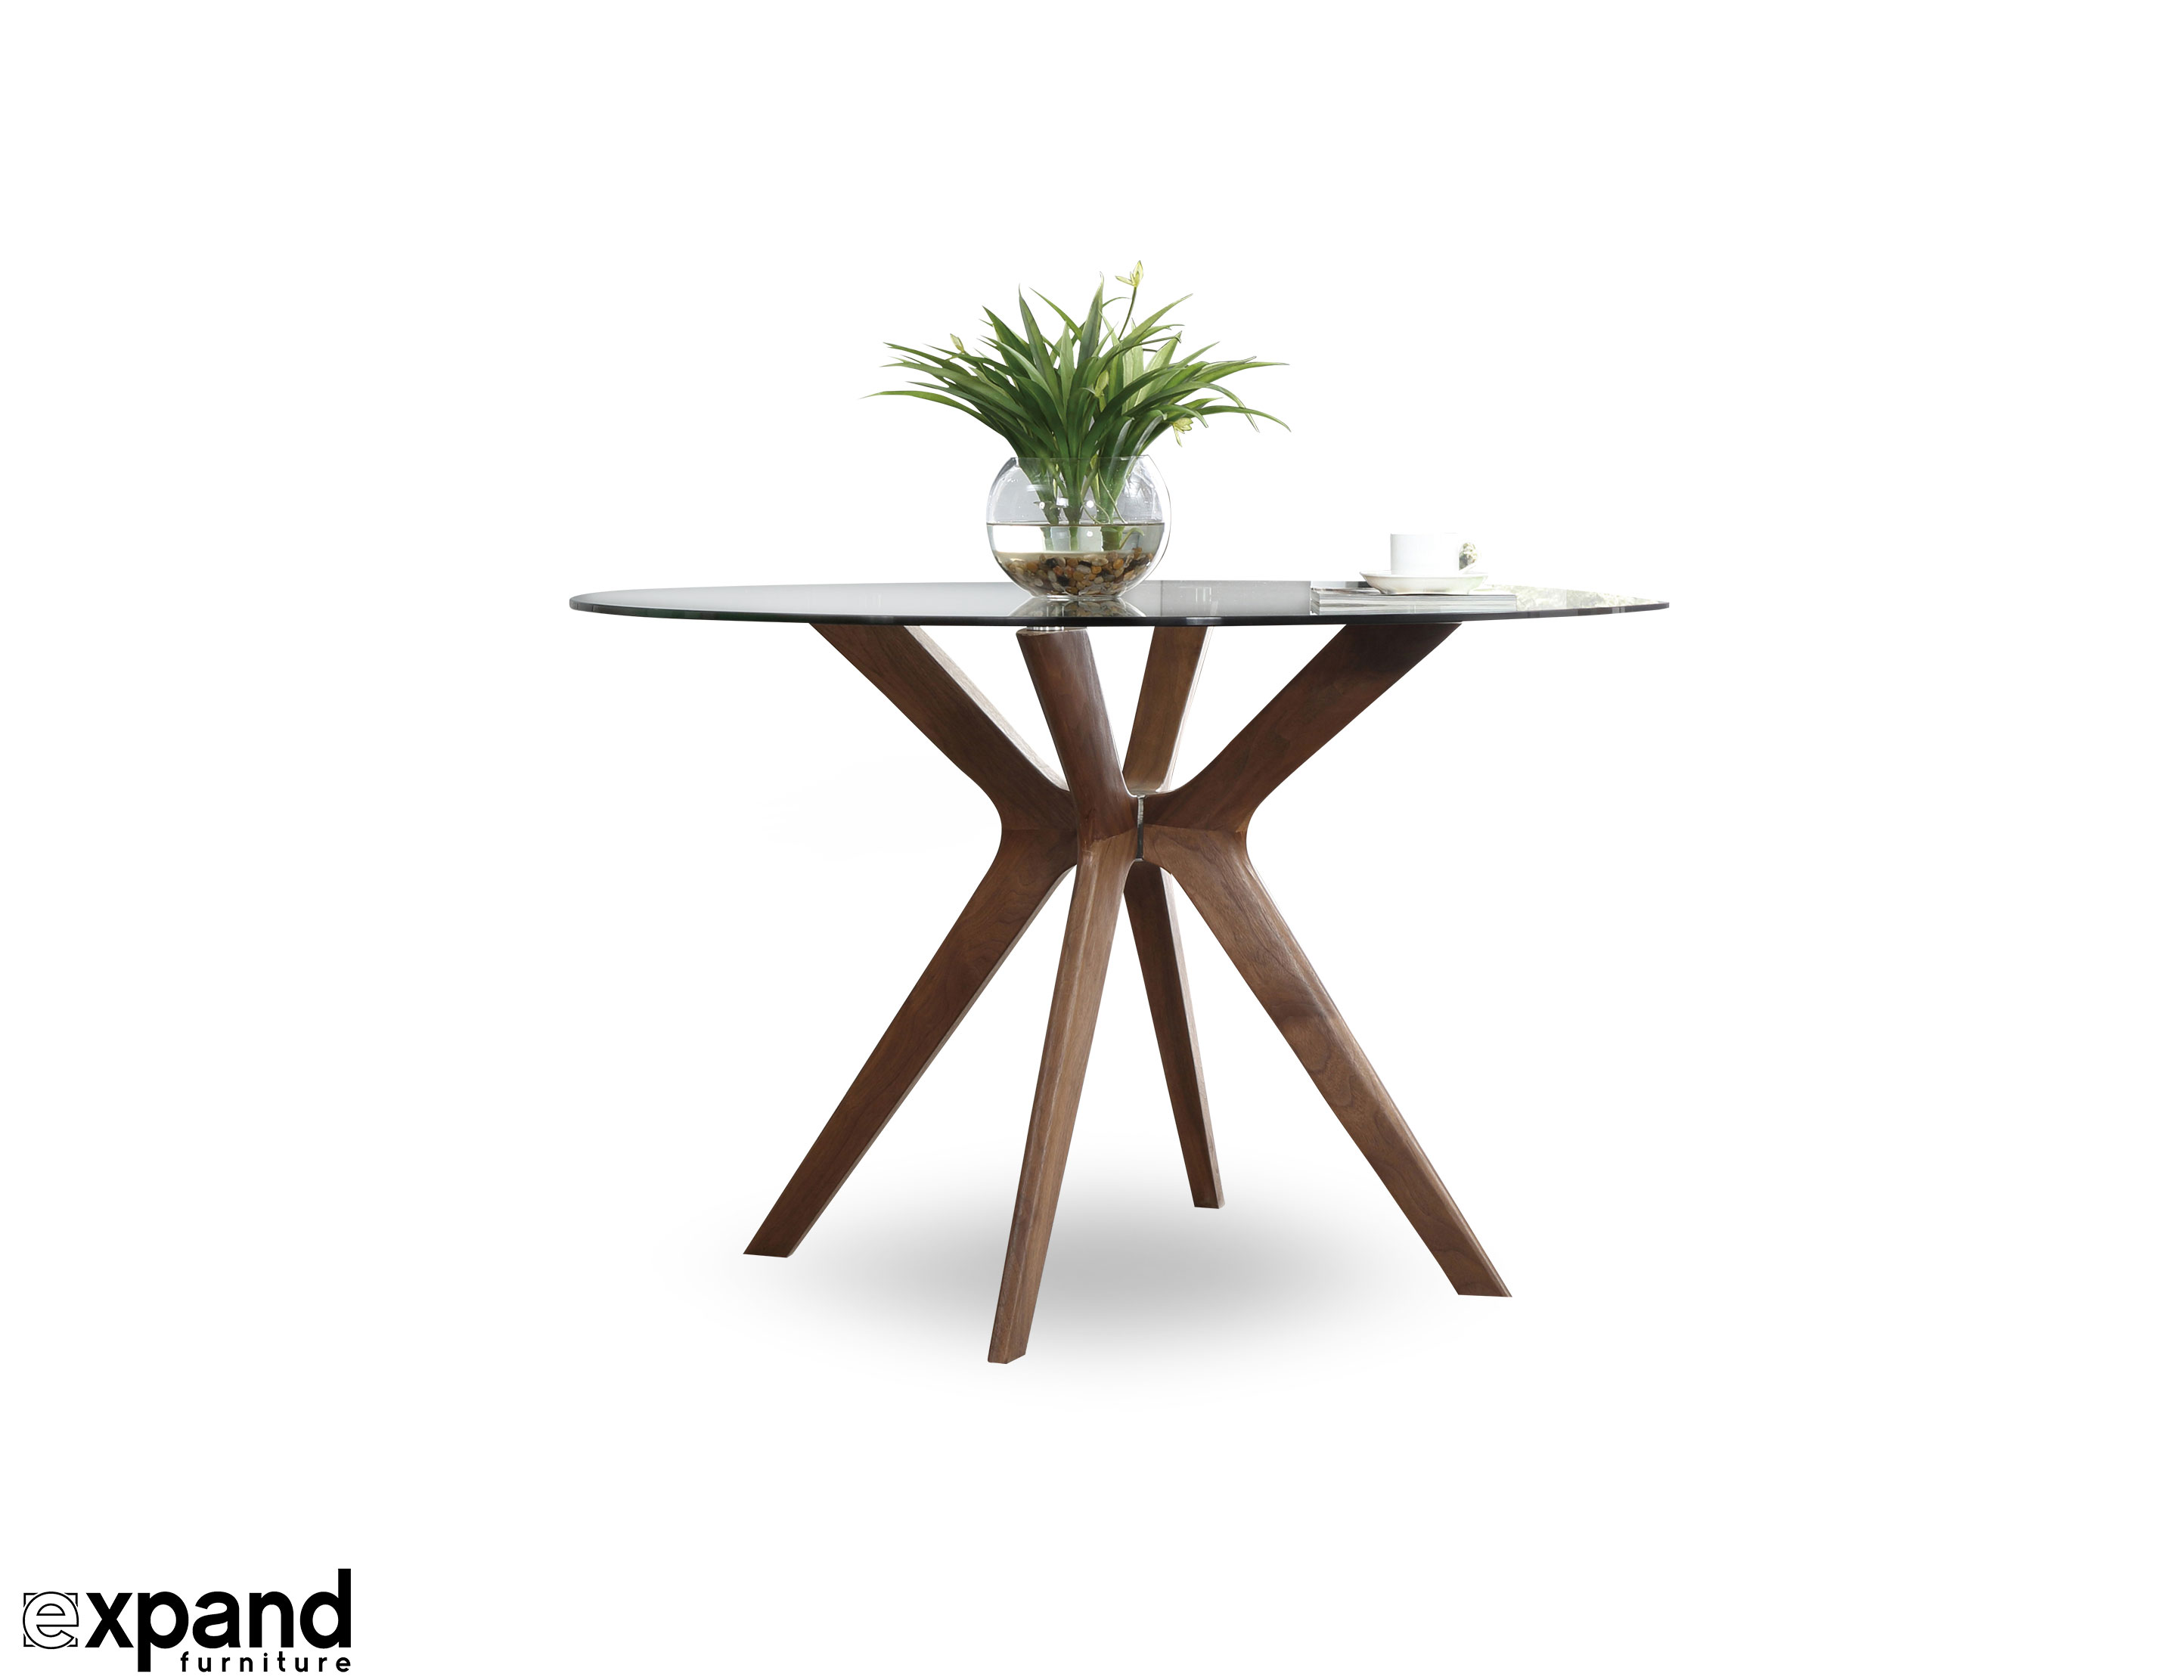 space saving tables extending dining occasional the branch clear glass round table that rests wood legs extra small accent target console white mirrored coffee desktop computer